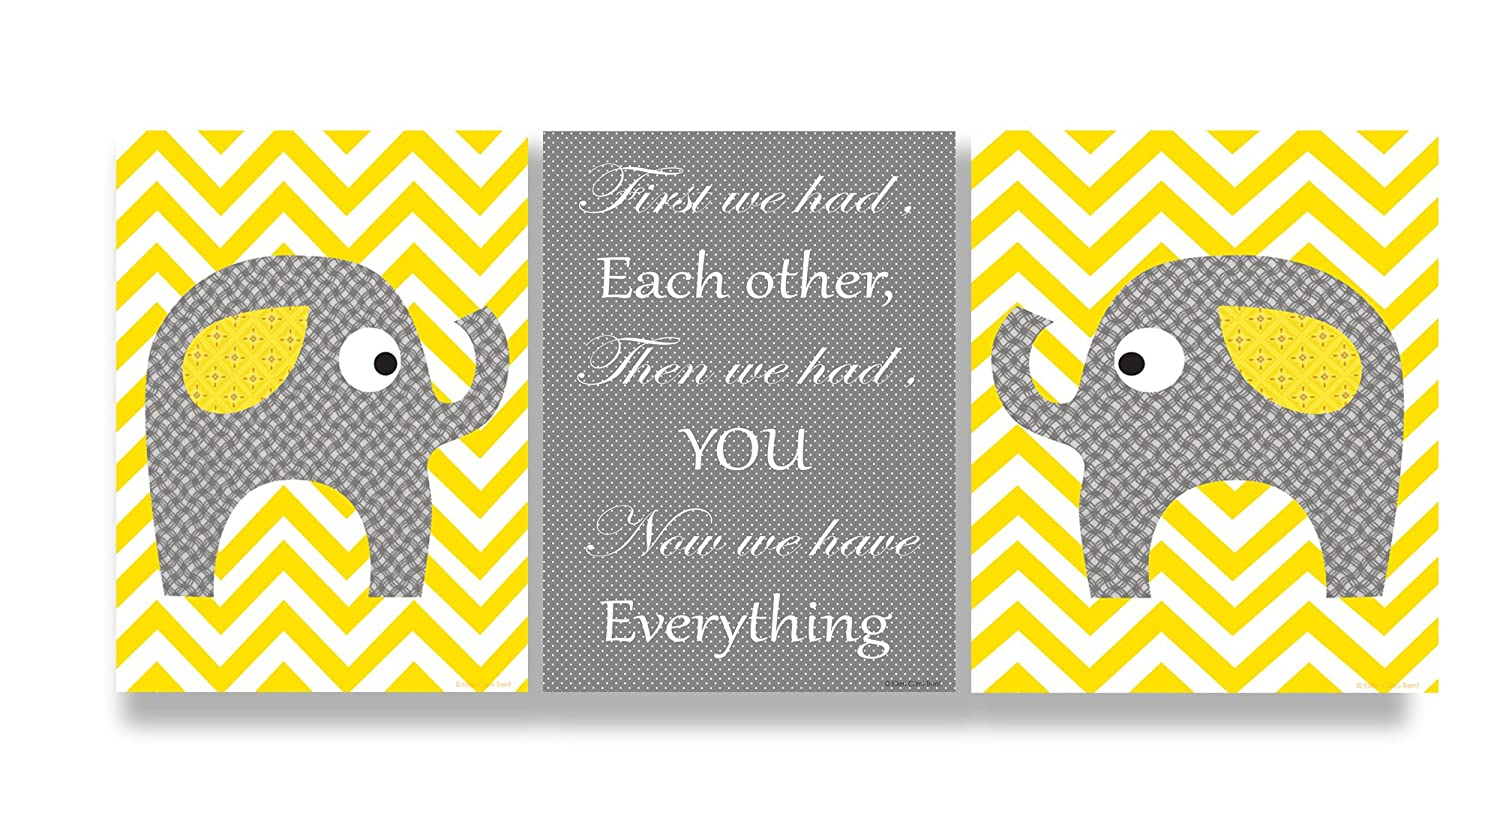 Amazon.com: The Kids Room By Stupell Grey Elephants On Yellow Chevron Now  We Have You 3 Pc. Rectangle Wall Plaque Set, 11 X 0.5 X 15, Proudly Made In  USA: ...